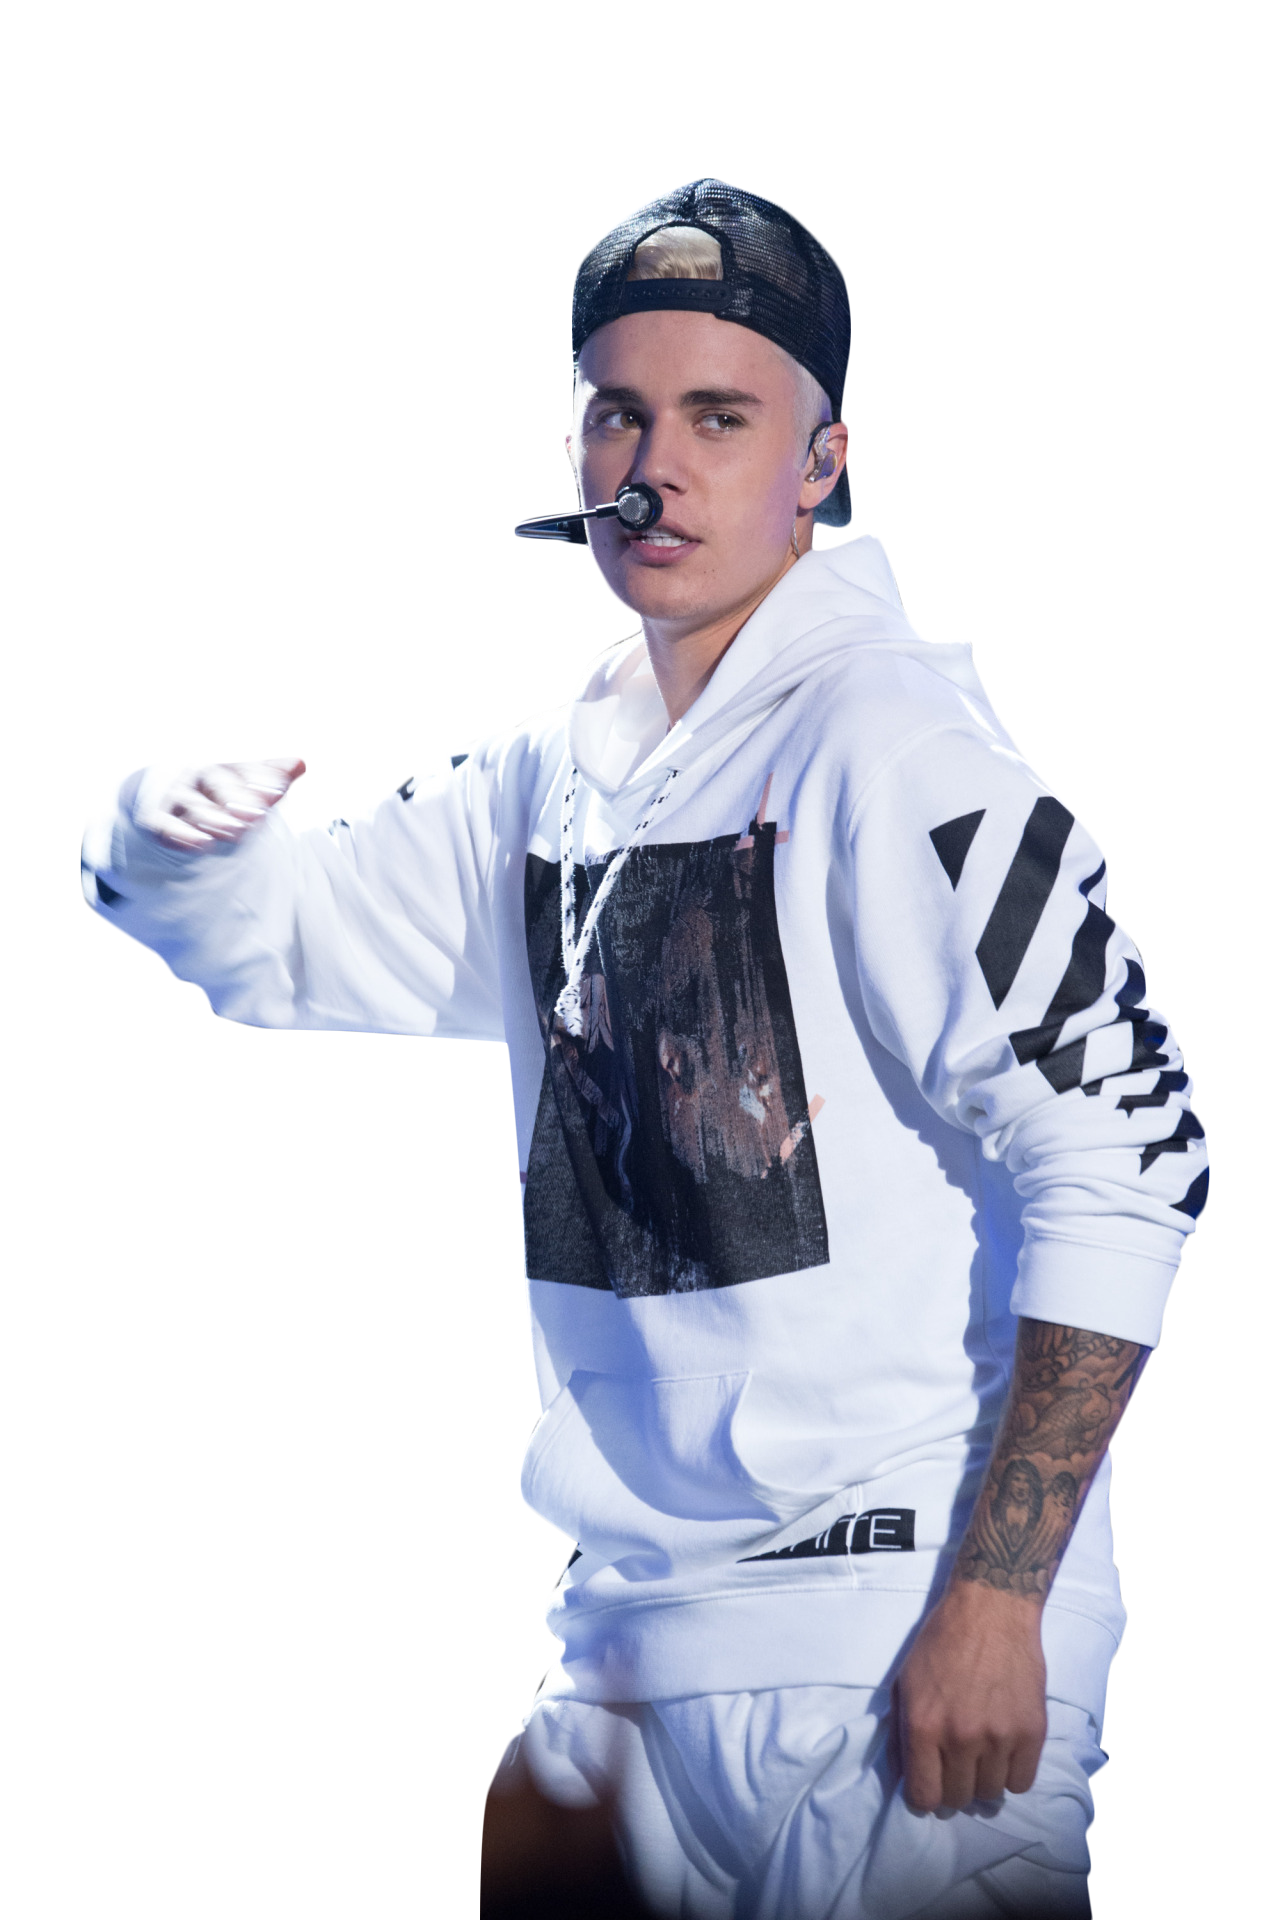 Justin Bieber on Stage PNG Image